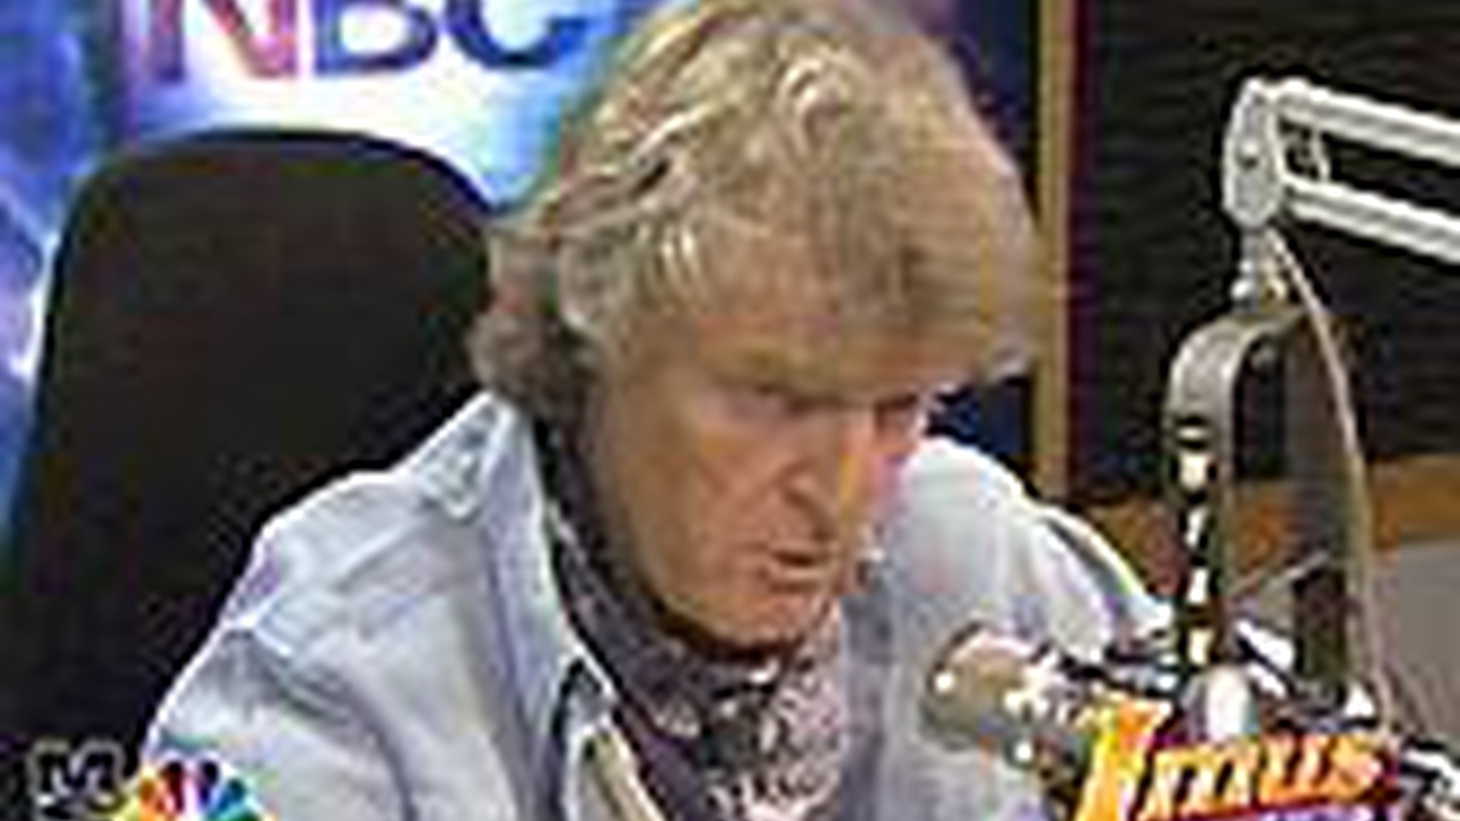 I've got a crick in my neck from shaking my head over the Don Imus affair. It's been explosive, alright. But when the dust settles, maybe we'll find we've gained from this sorry episode some valuable wisdom. No doubt Imus is sadder, but wiser, having  painfully discovered something most of us might have already suspected: namely, if you're a big-time radio and TV host, do NOT go taking racist, misogynist potshots at unsuspecting young college women who you only noticed in the first place because they're terrific...